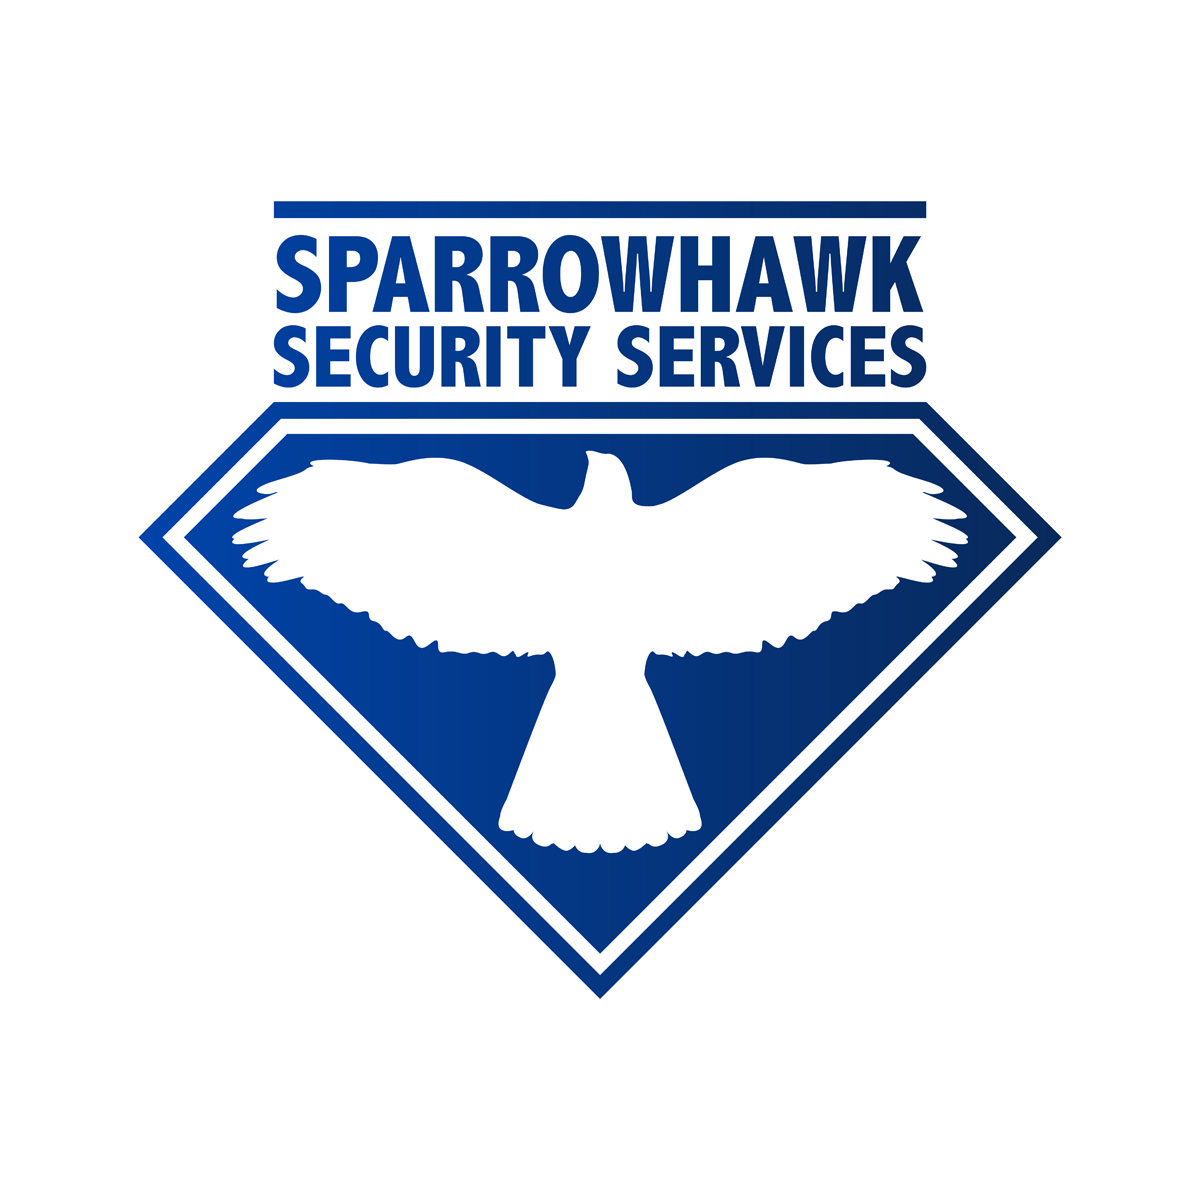 Sparrowhawk Security Services Logo - logo design by PixelDuck